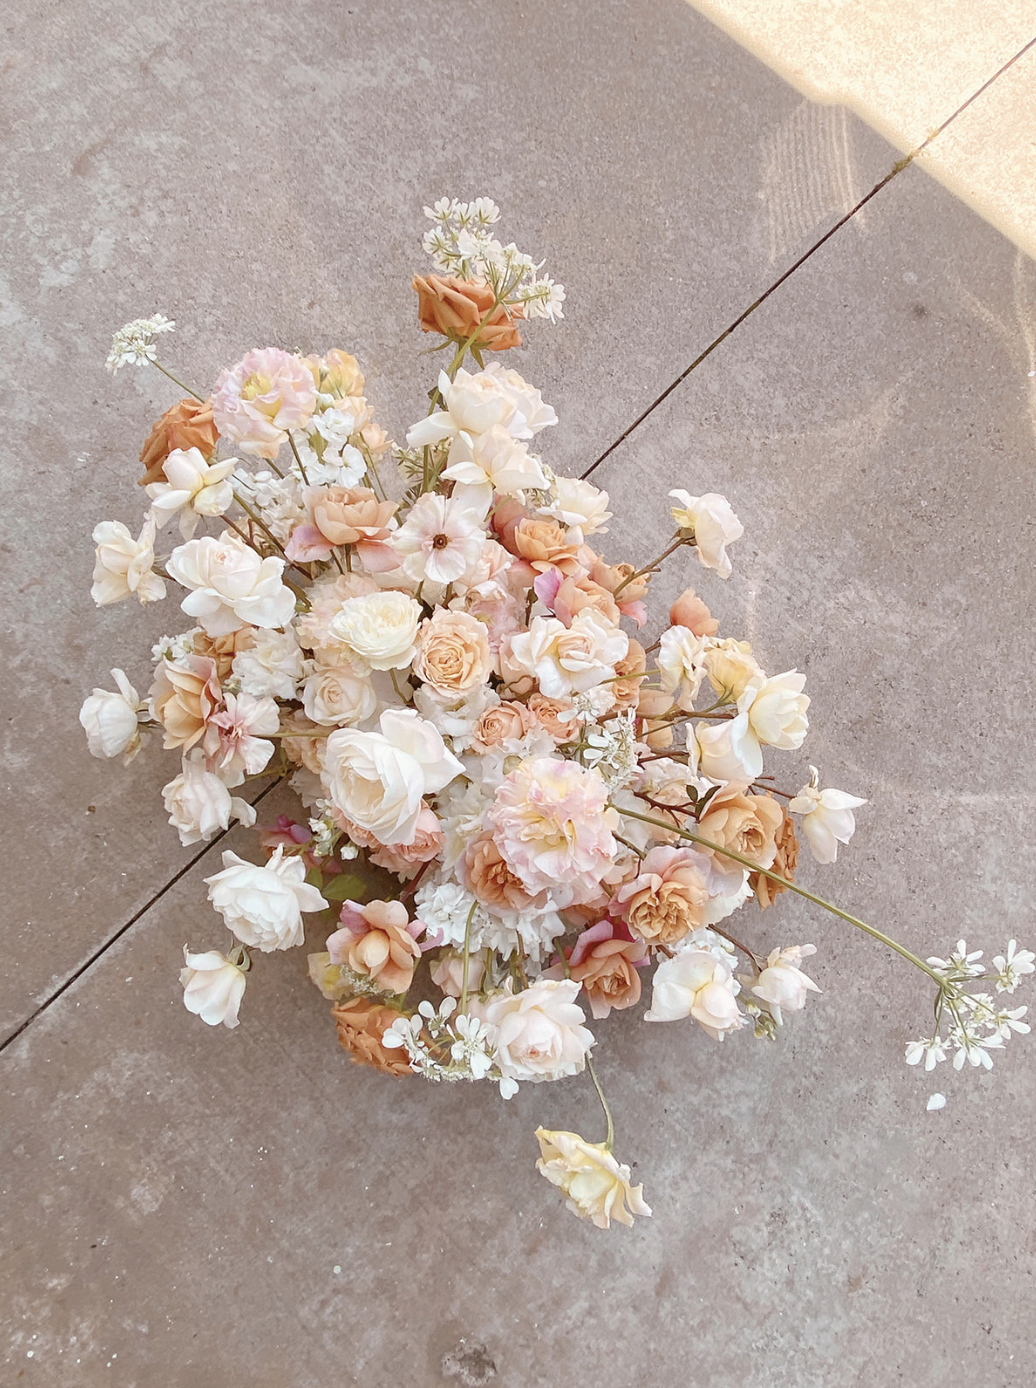 Tips for picking your wedding florals by Hilary Kao Photo. This blog post includes wedding details, bridal fashion, wedding tips, bridal portraits. Book your Los Angeles wedding and browse the blog for more inspiration #photography #weddingplanning #weddingtips #weddingphotography #LosAngelesphotographer